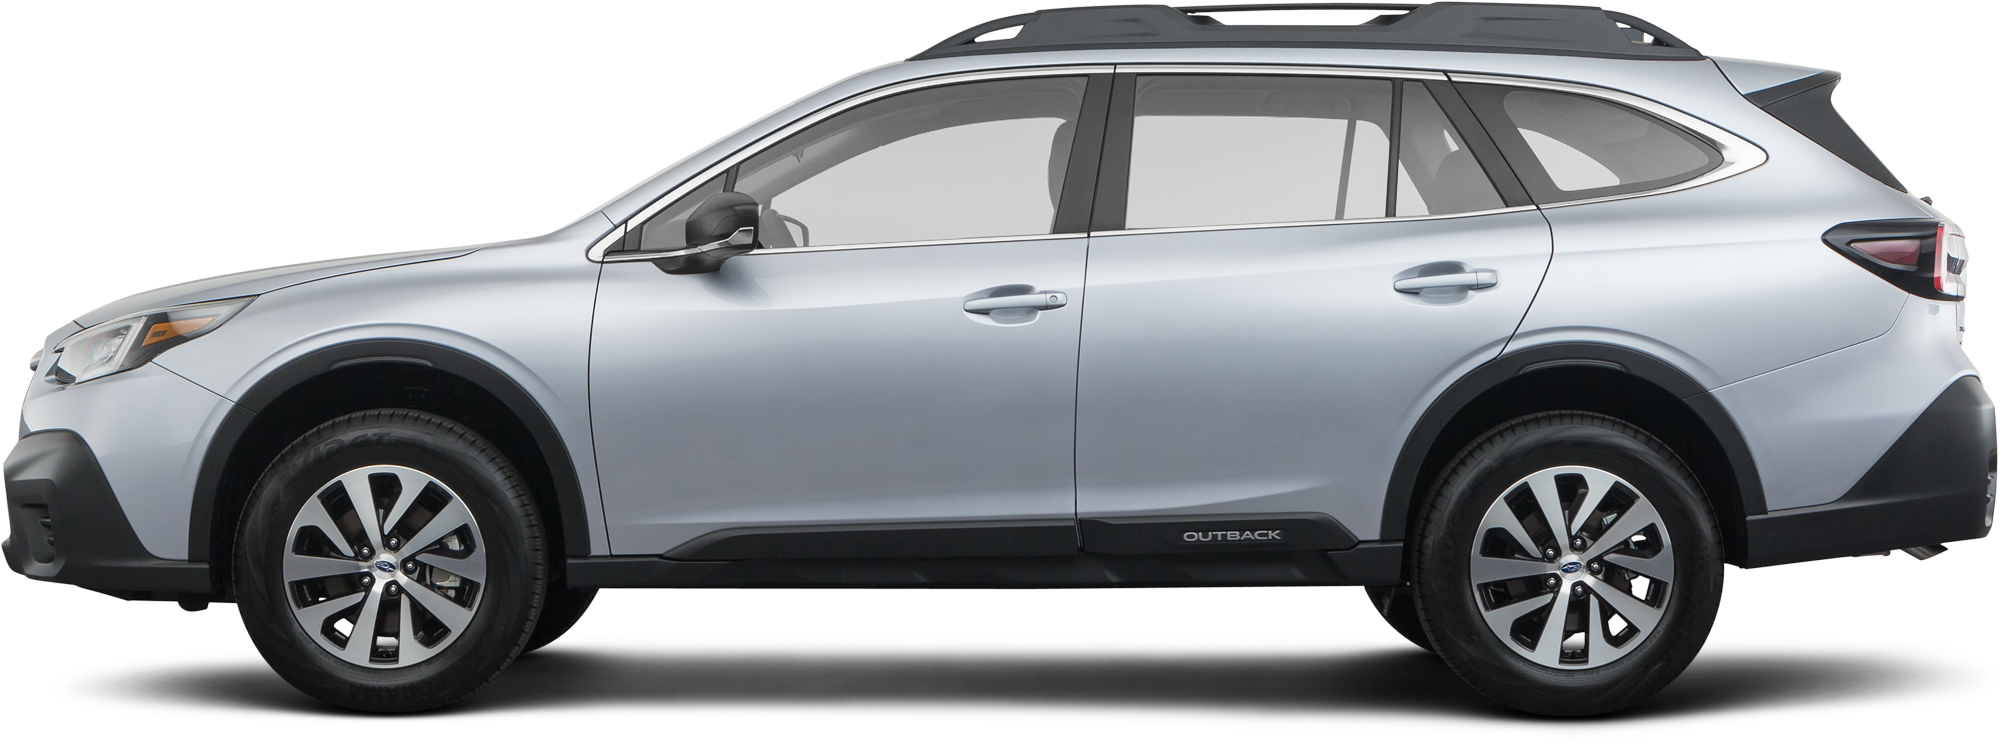 2021 Subaru Outback SUV Base Trim Level